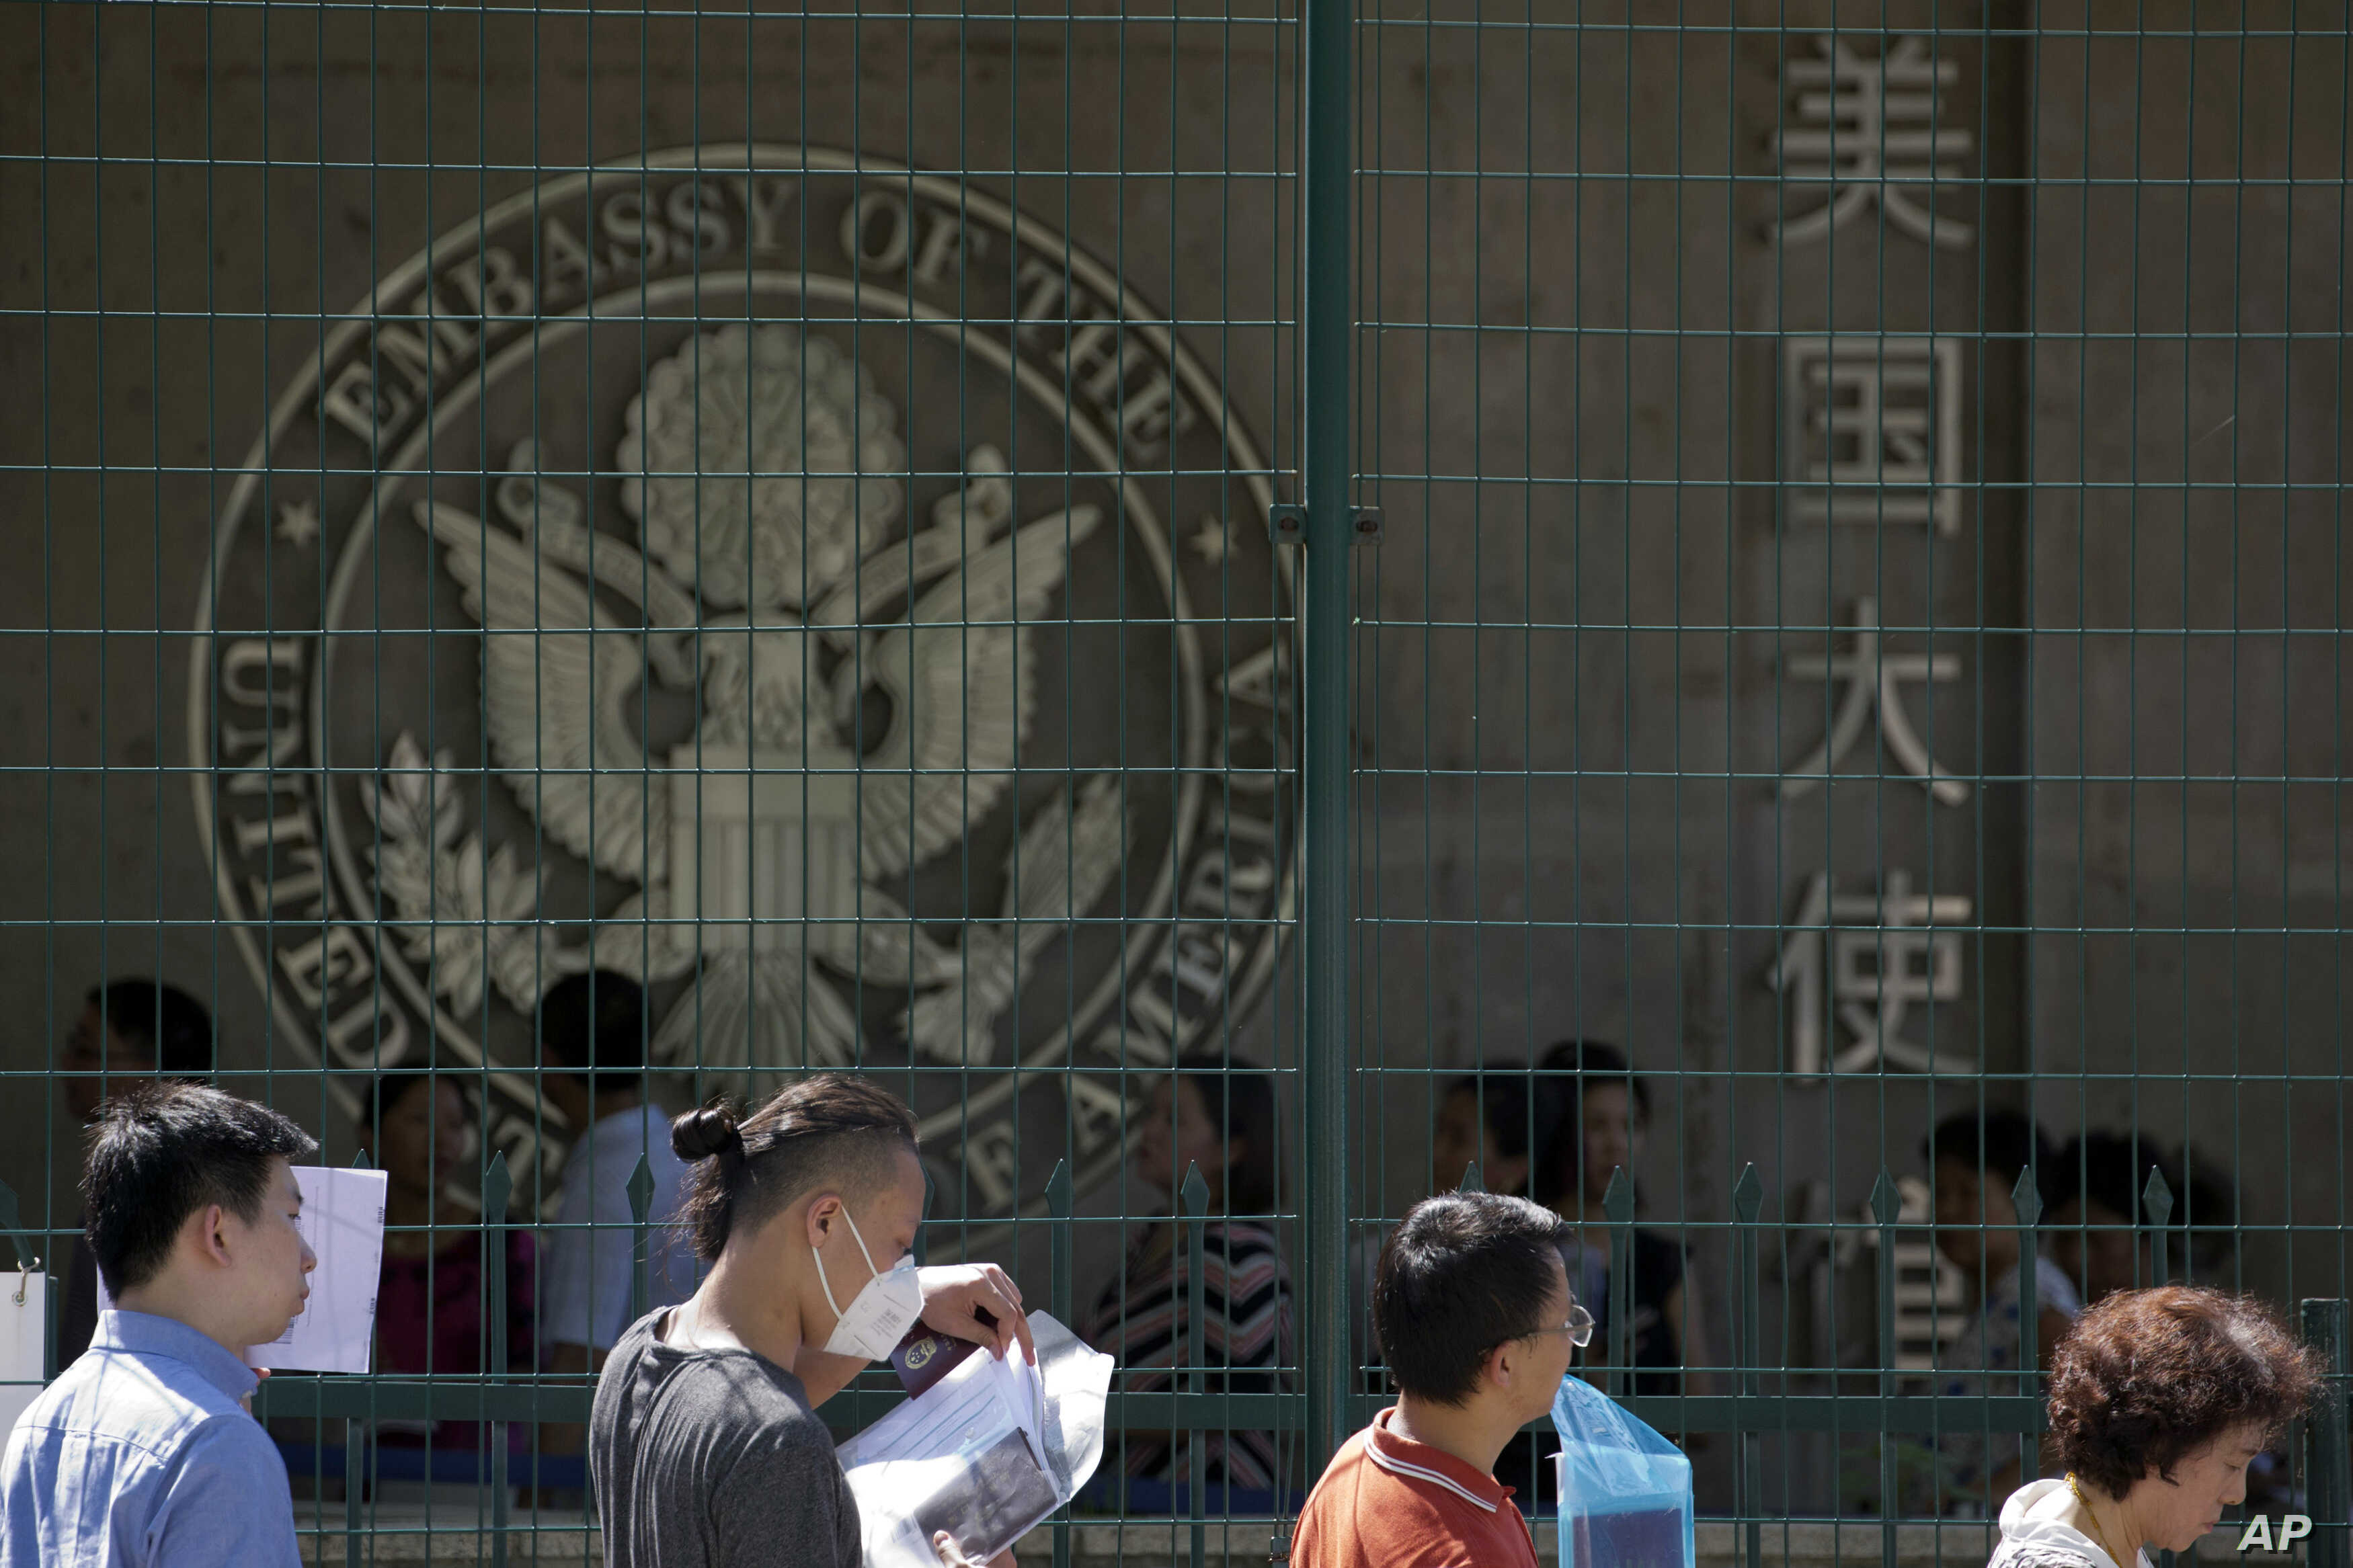 FILE - Visa applicants wait to enter the U.S. Embassy in Beijing, China, July 26, 2018.